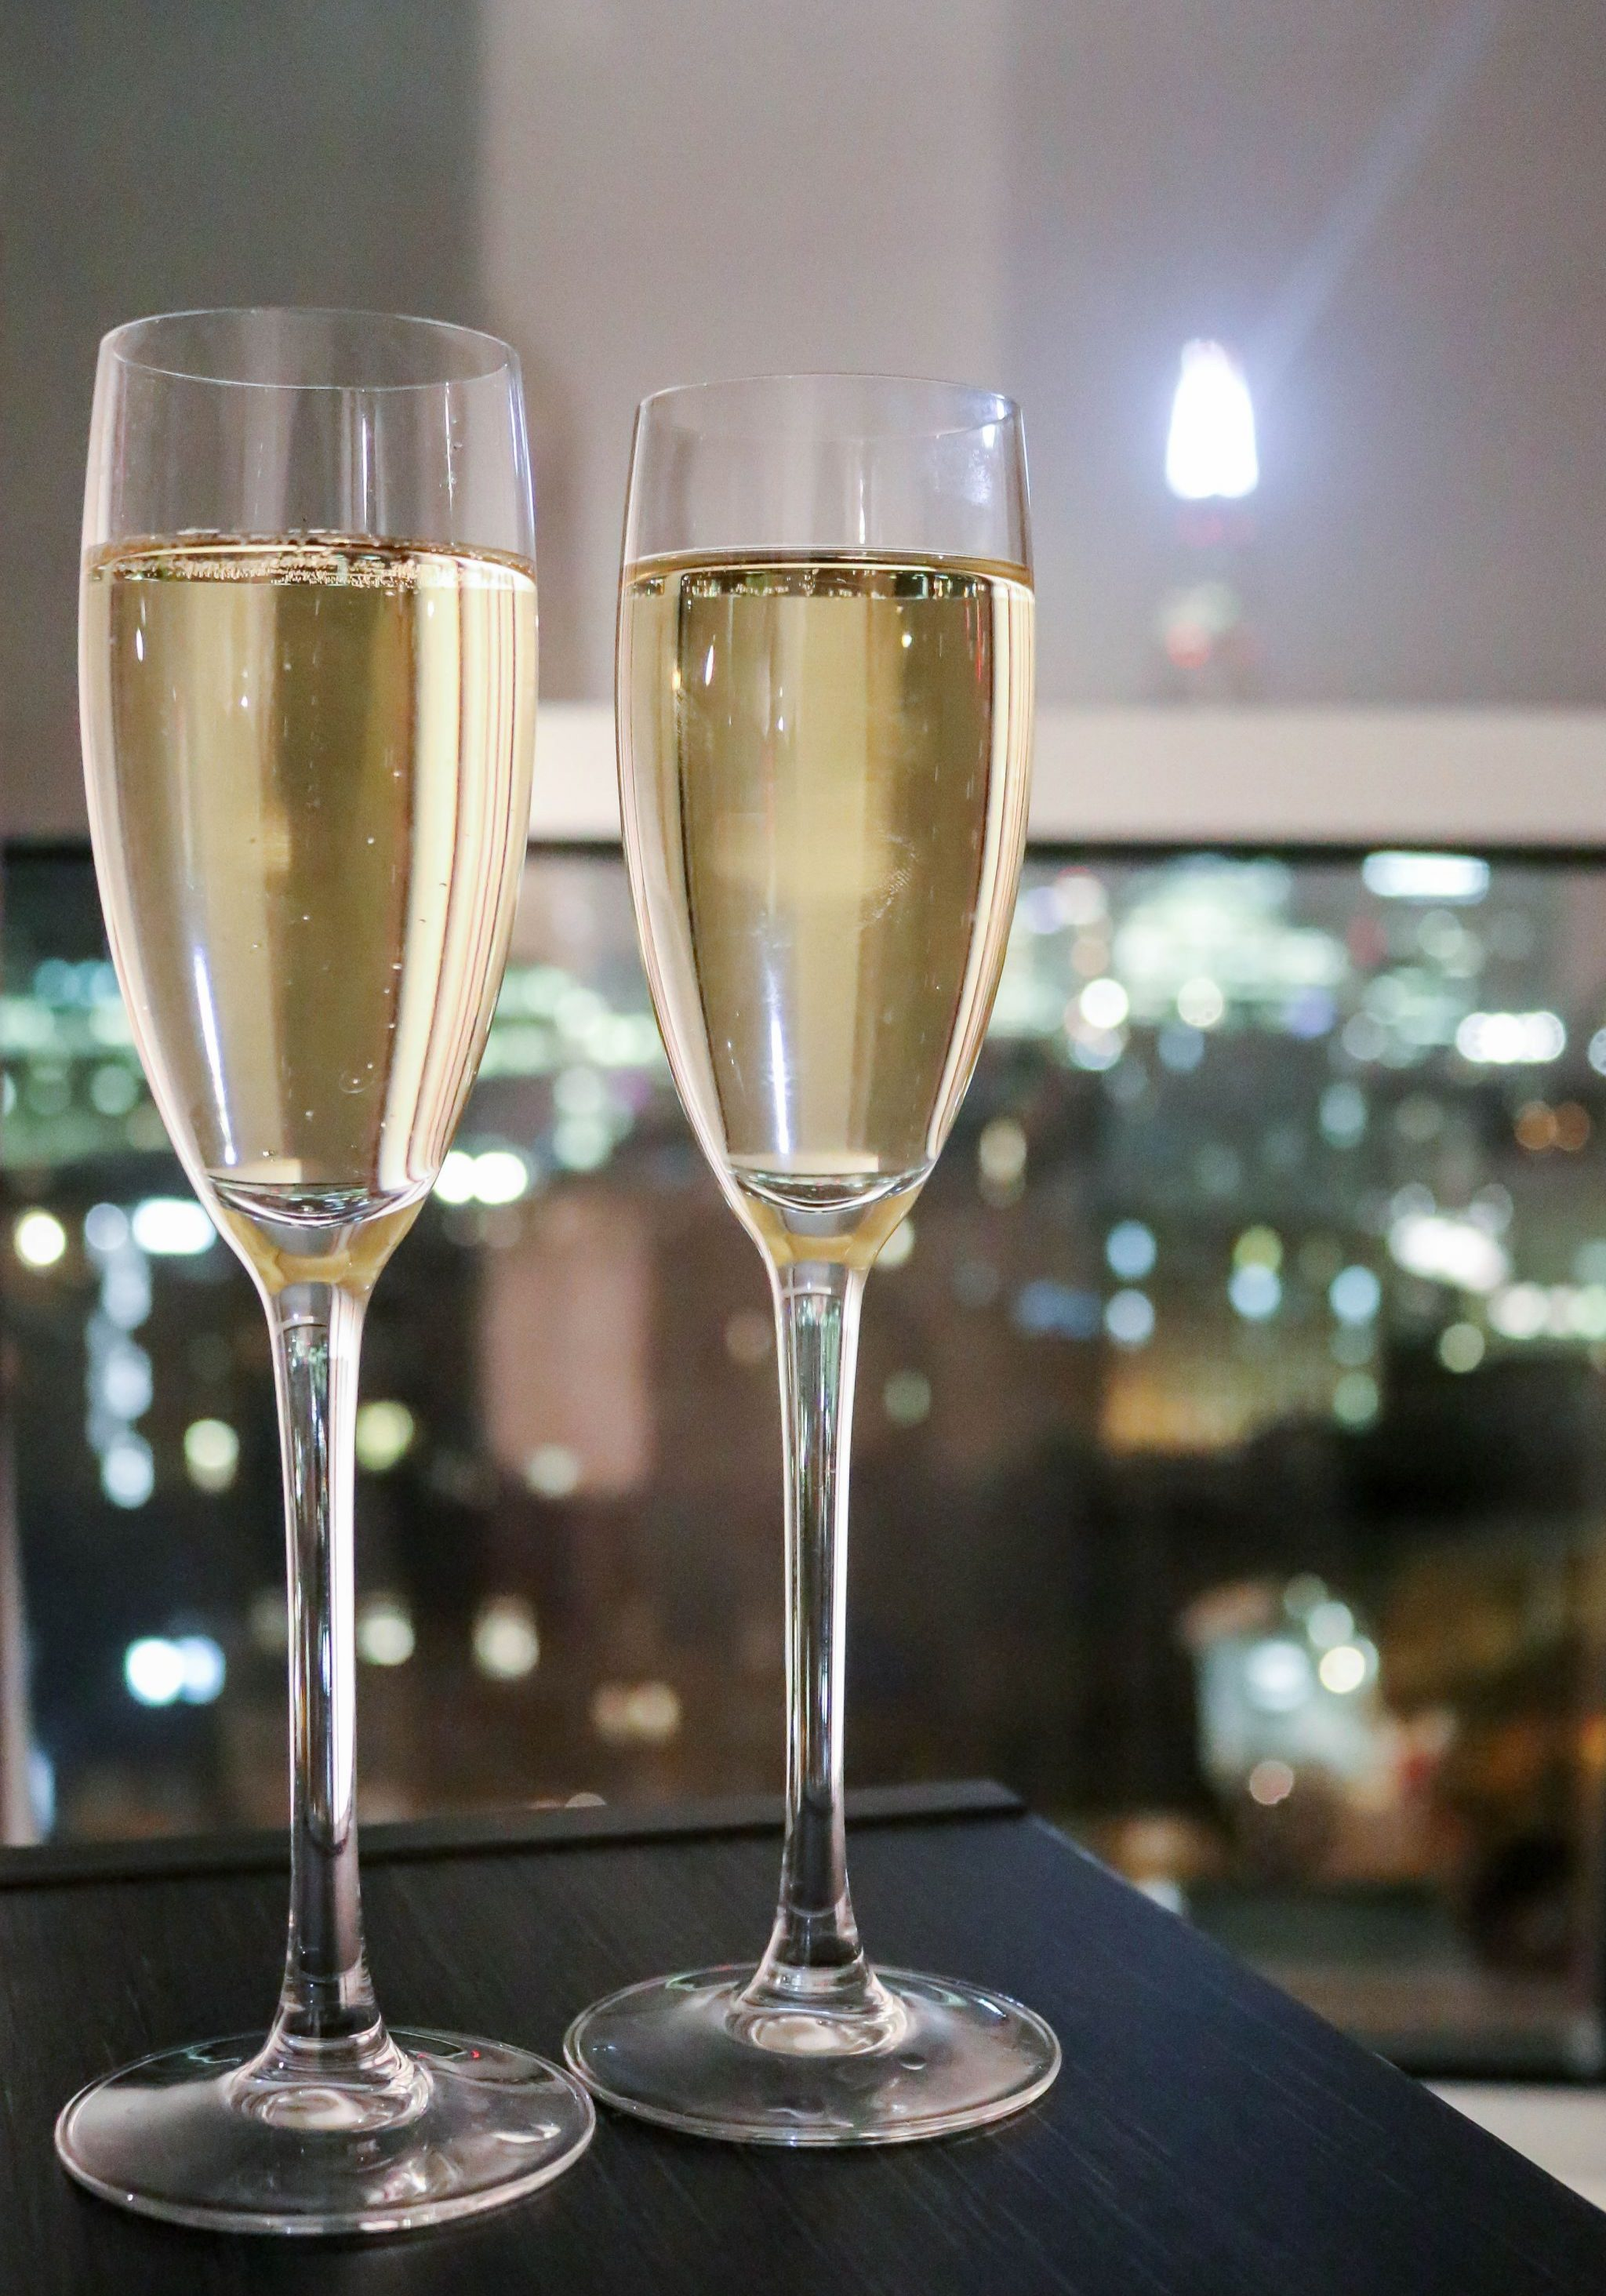 An Anniversary Tale at the Novotel Blackfriars